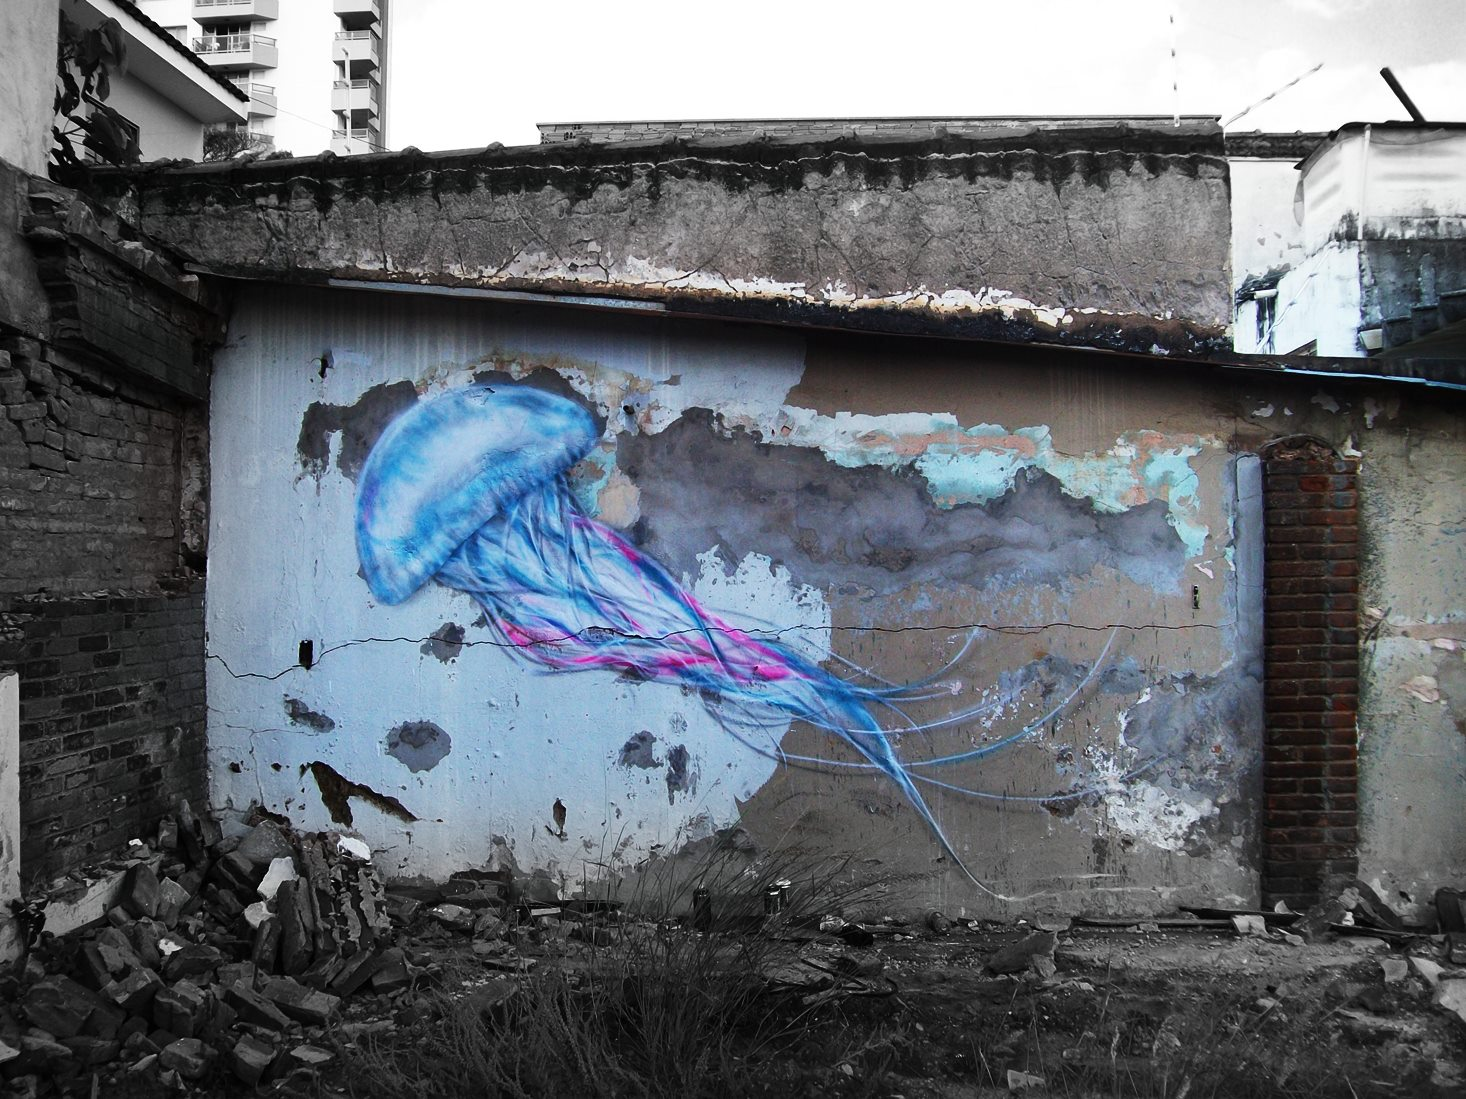 L7m in Brazil. Photo via Street Art Utopia.